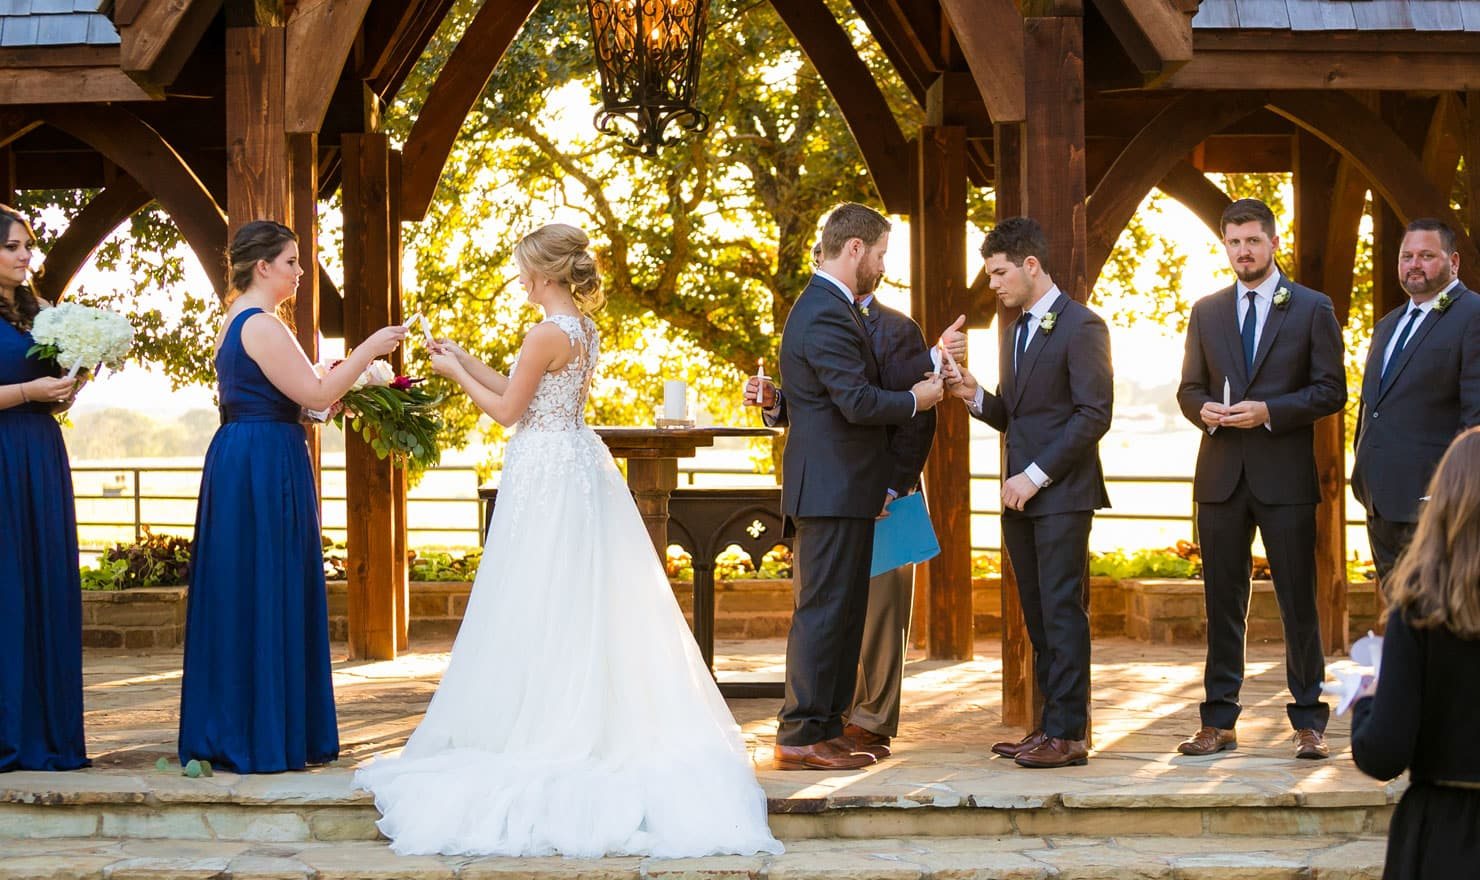 30 Traditional And Unique Unity Ceremony Ideas